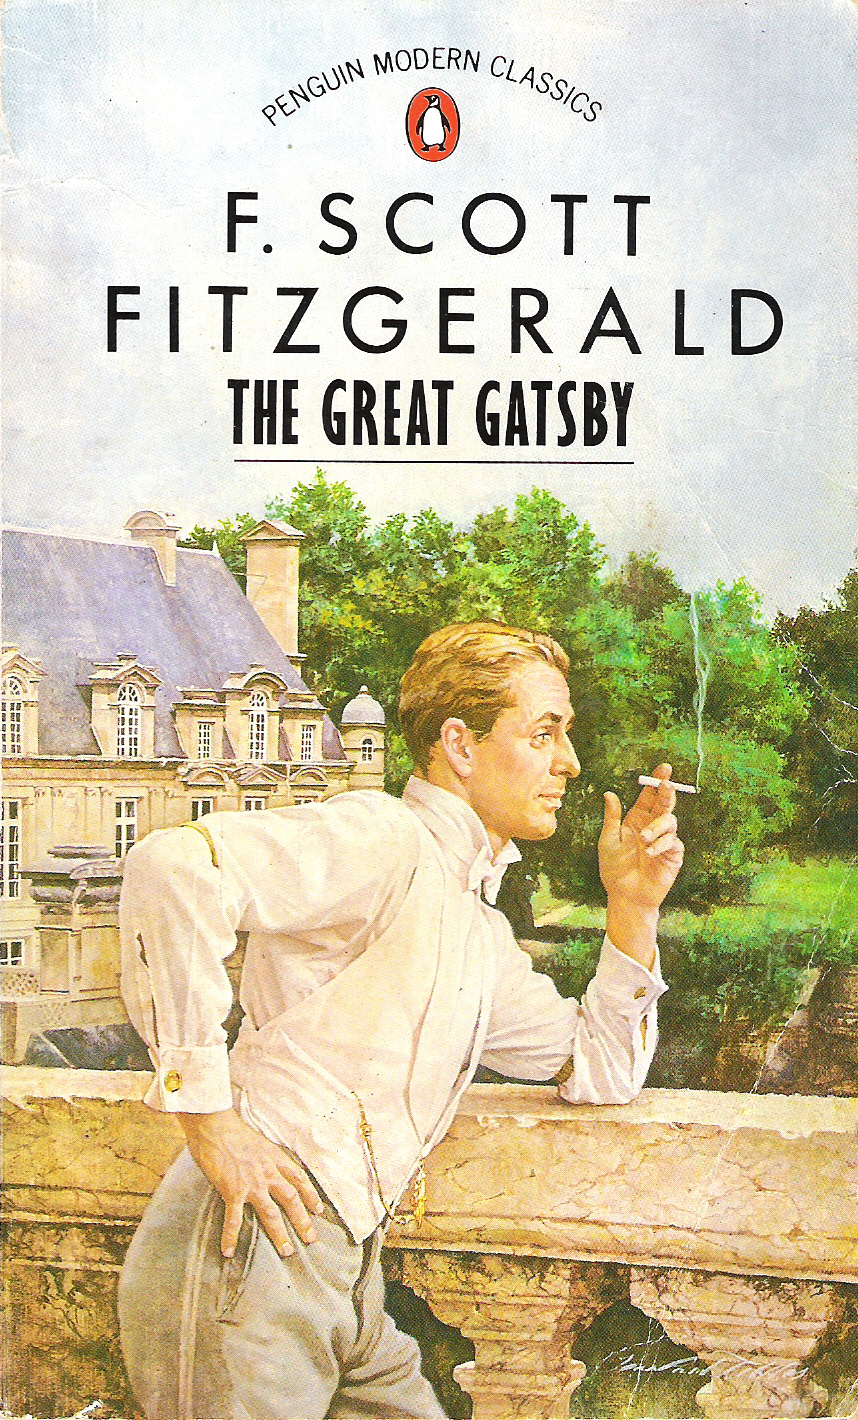 A literary analysis of an american dream in the great gatsby by f scott fitzgerald